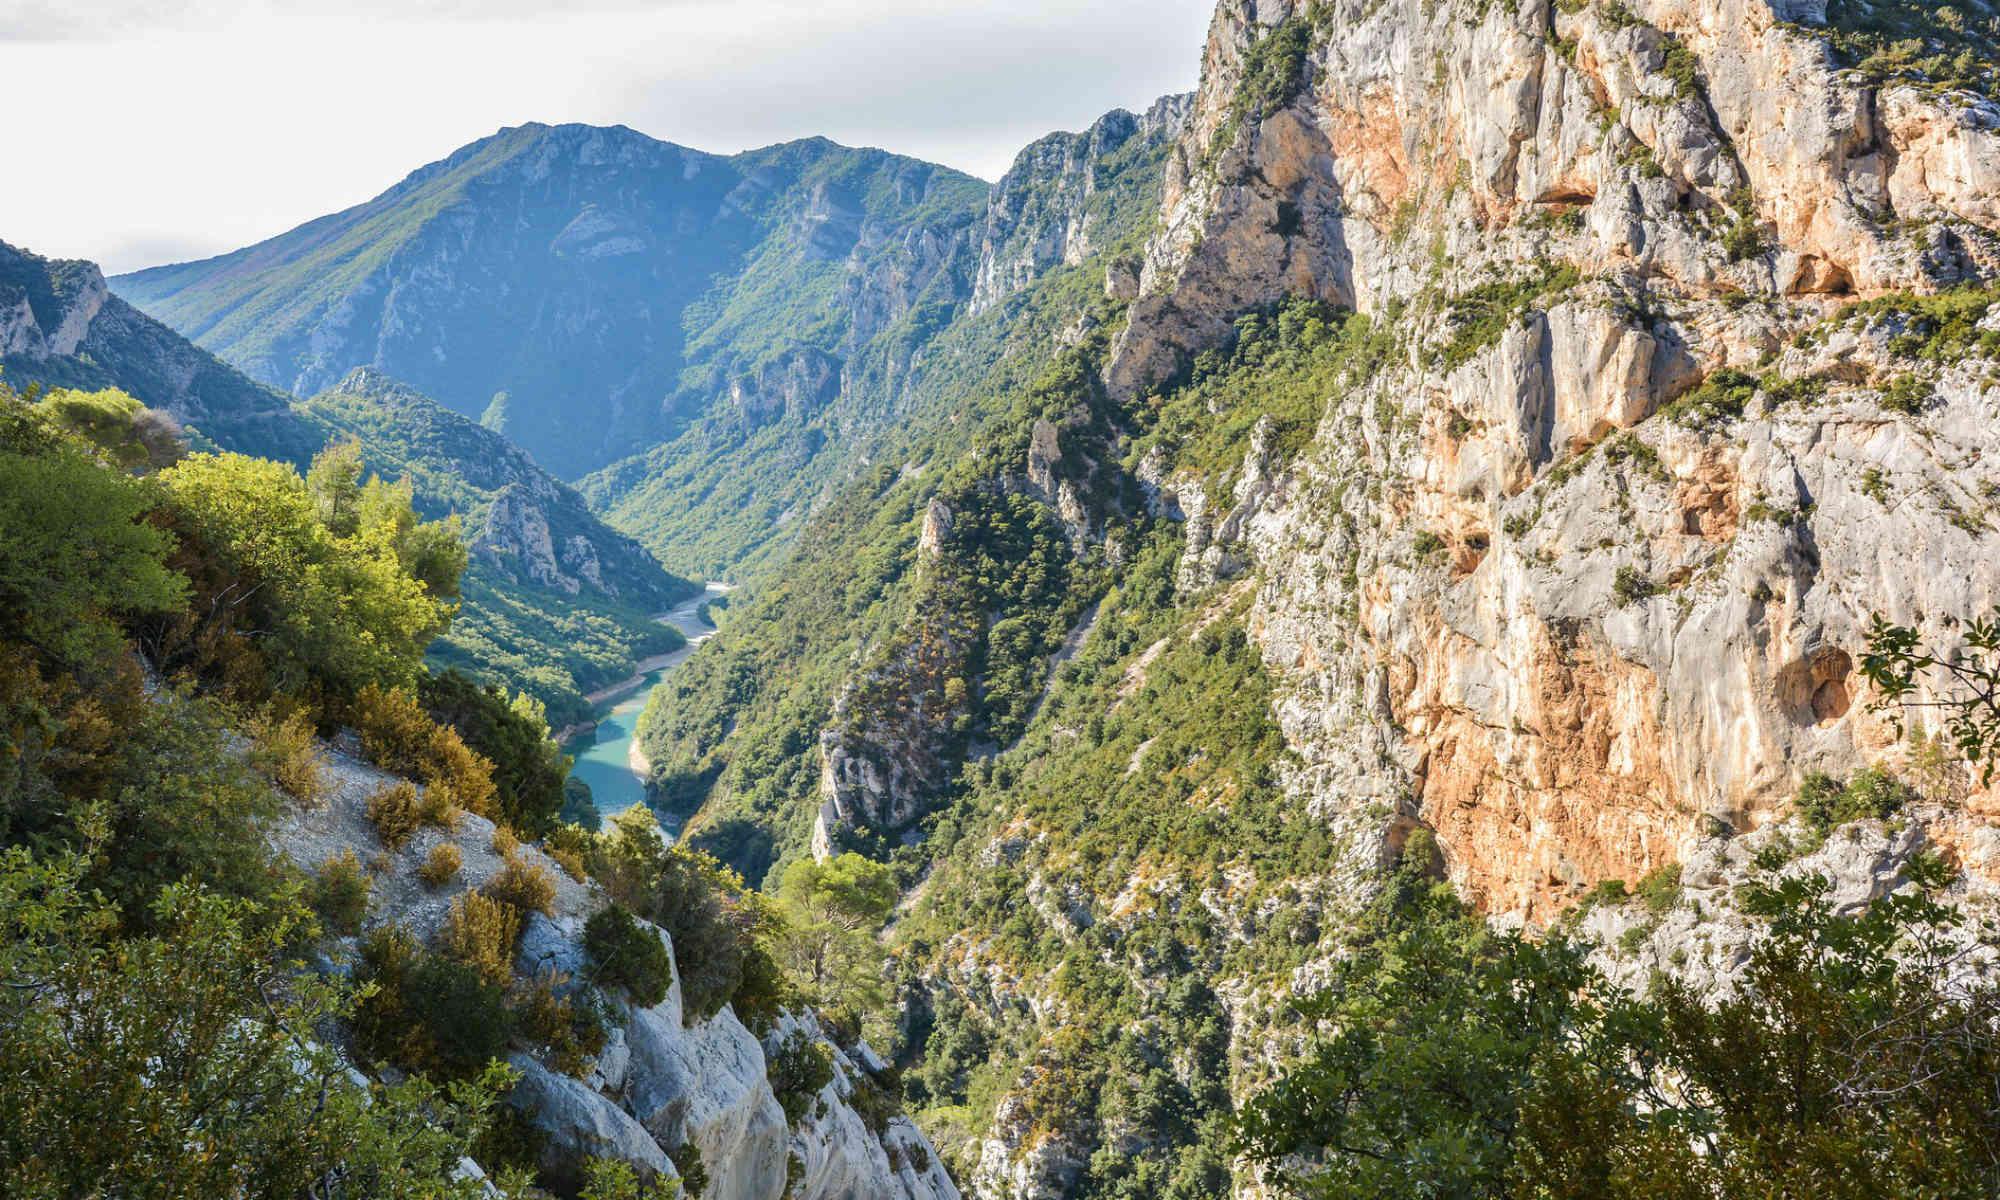 A view of the Verdon river winding its way through the depths of the gorge.